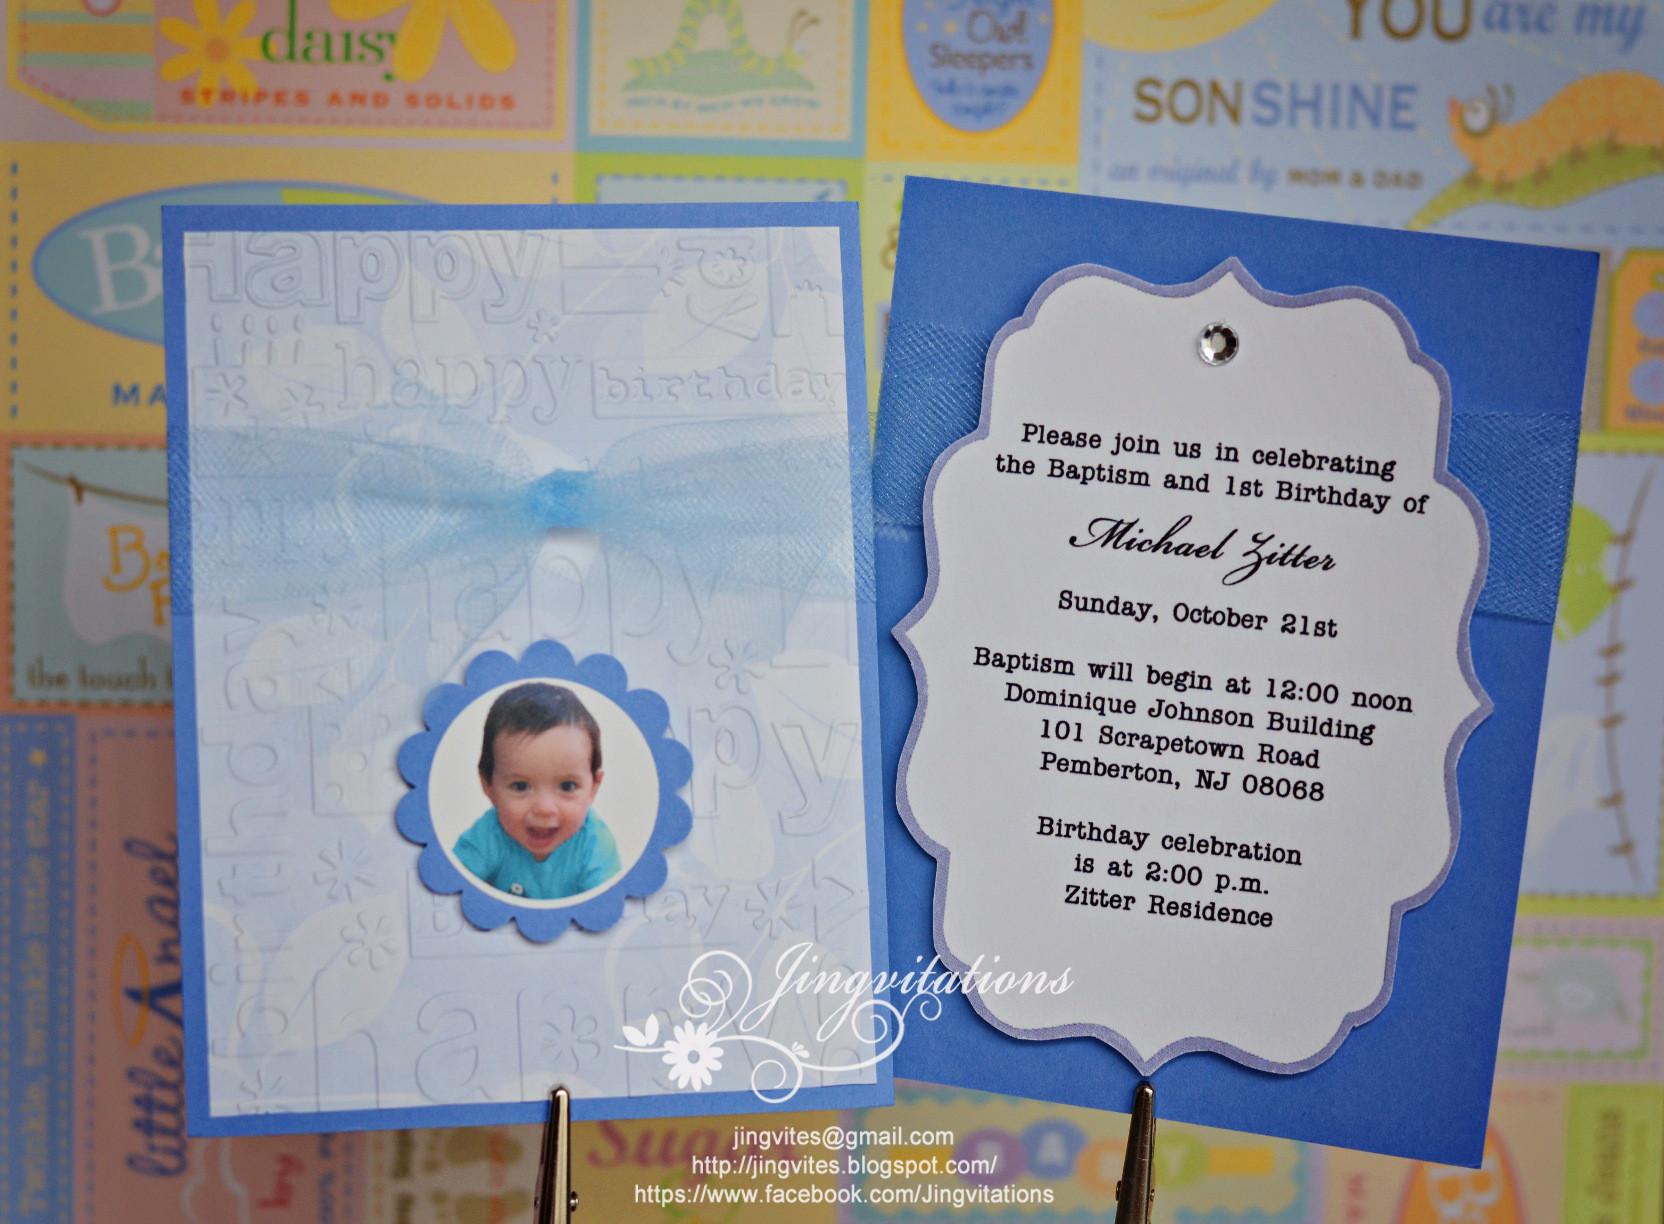 Best ideas about Baptism Birthday Invitations . Save or Pin Baptism and First Birthday Invitations Now.